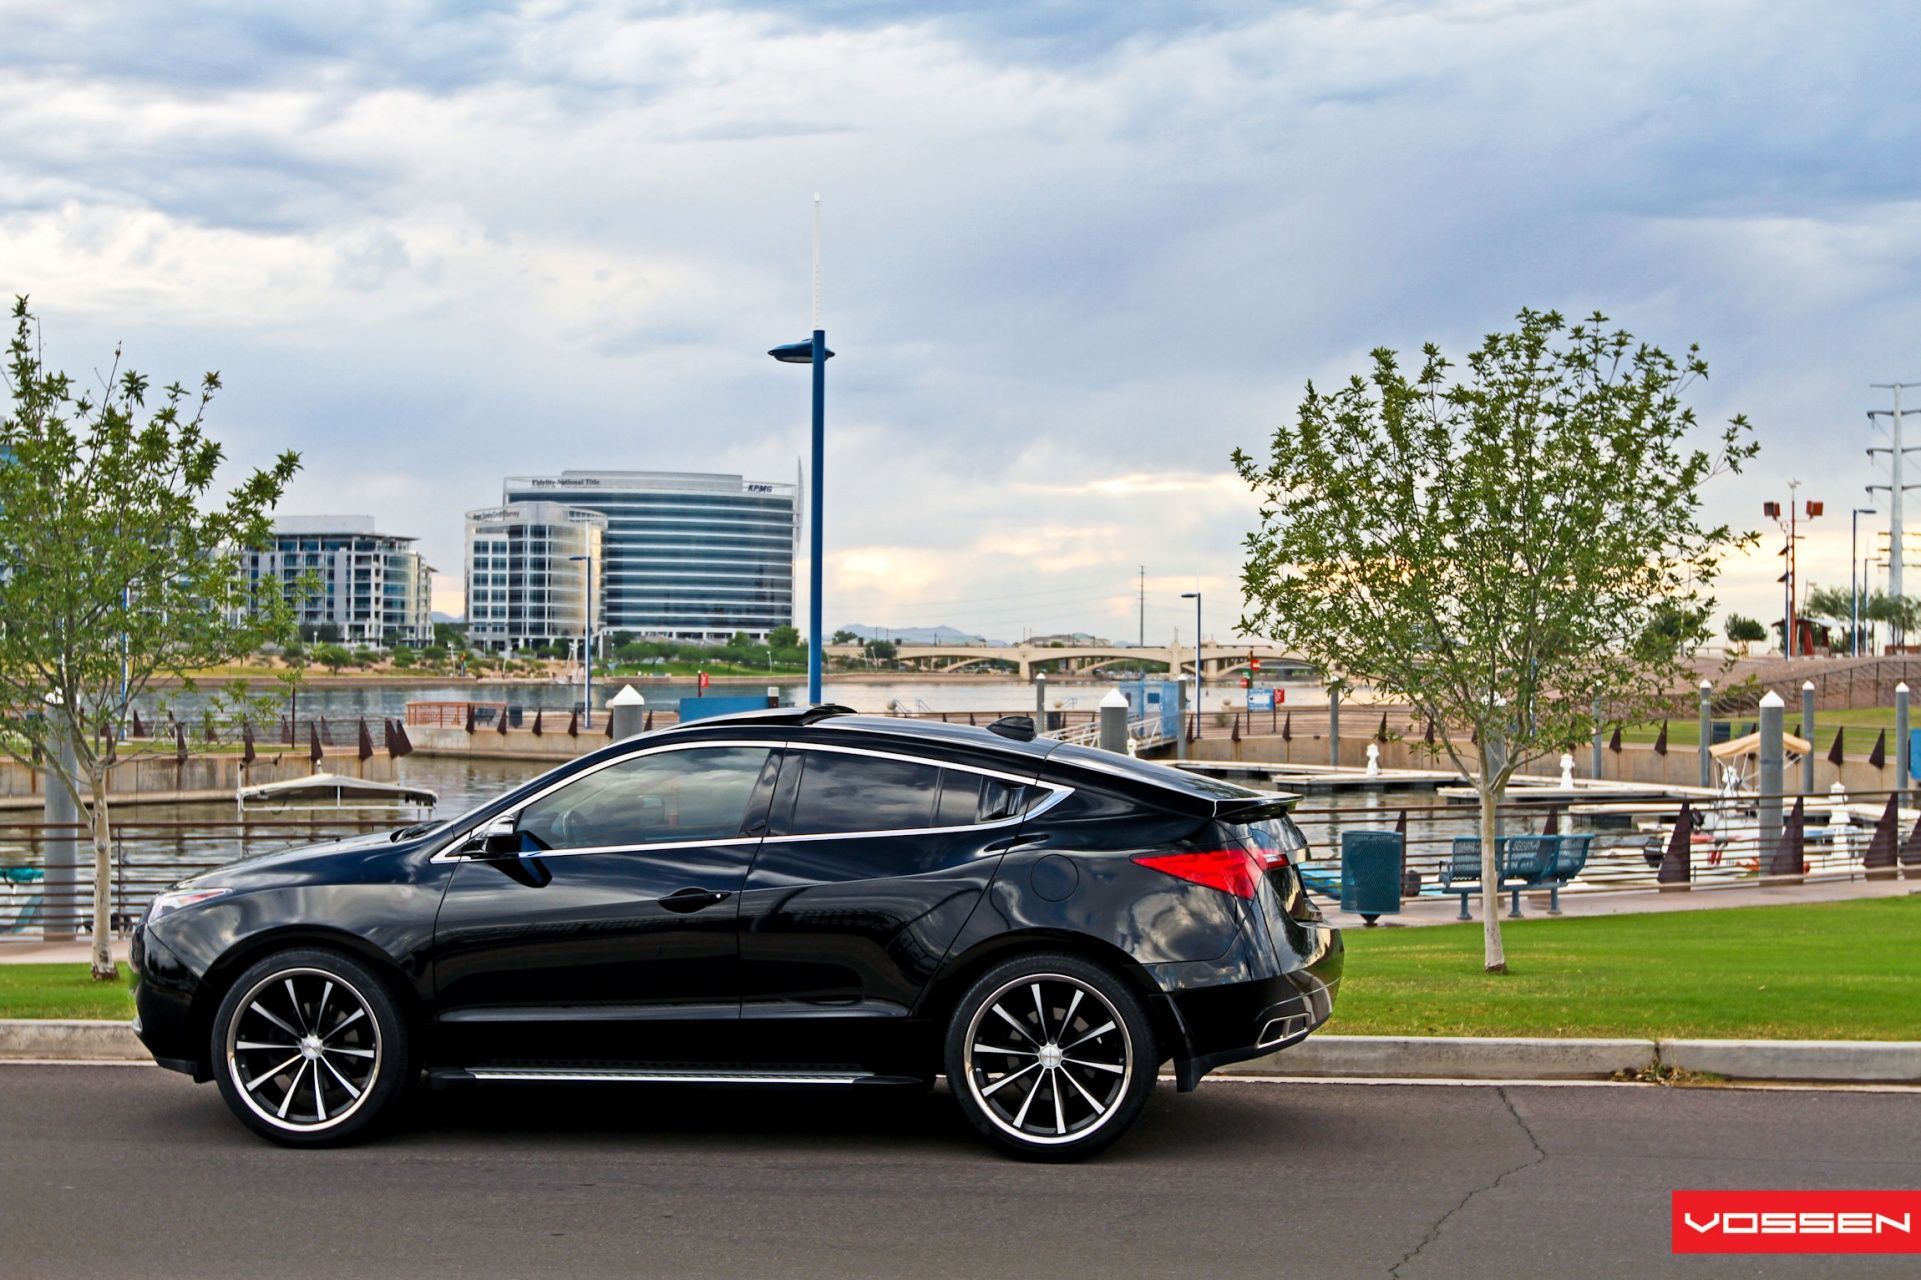 Acura ZDX Tuning By Vossen Sport UTE CROSS Pinterest Cars - Acura zdx rims